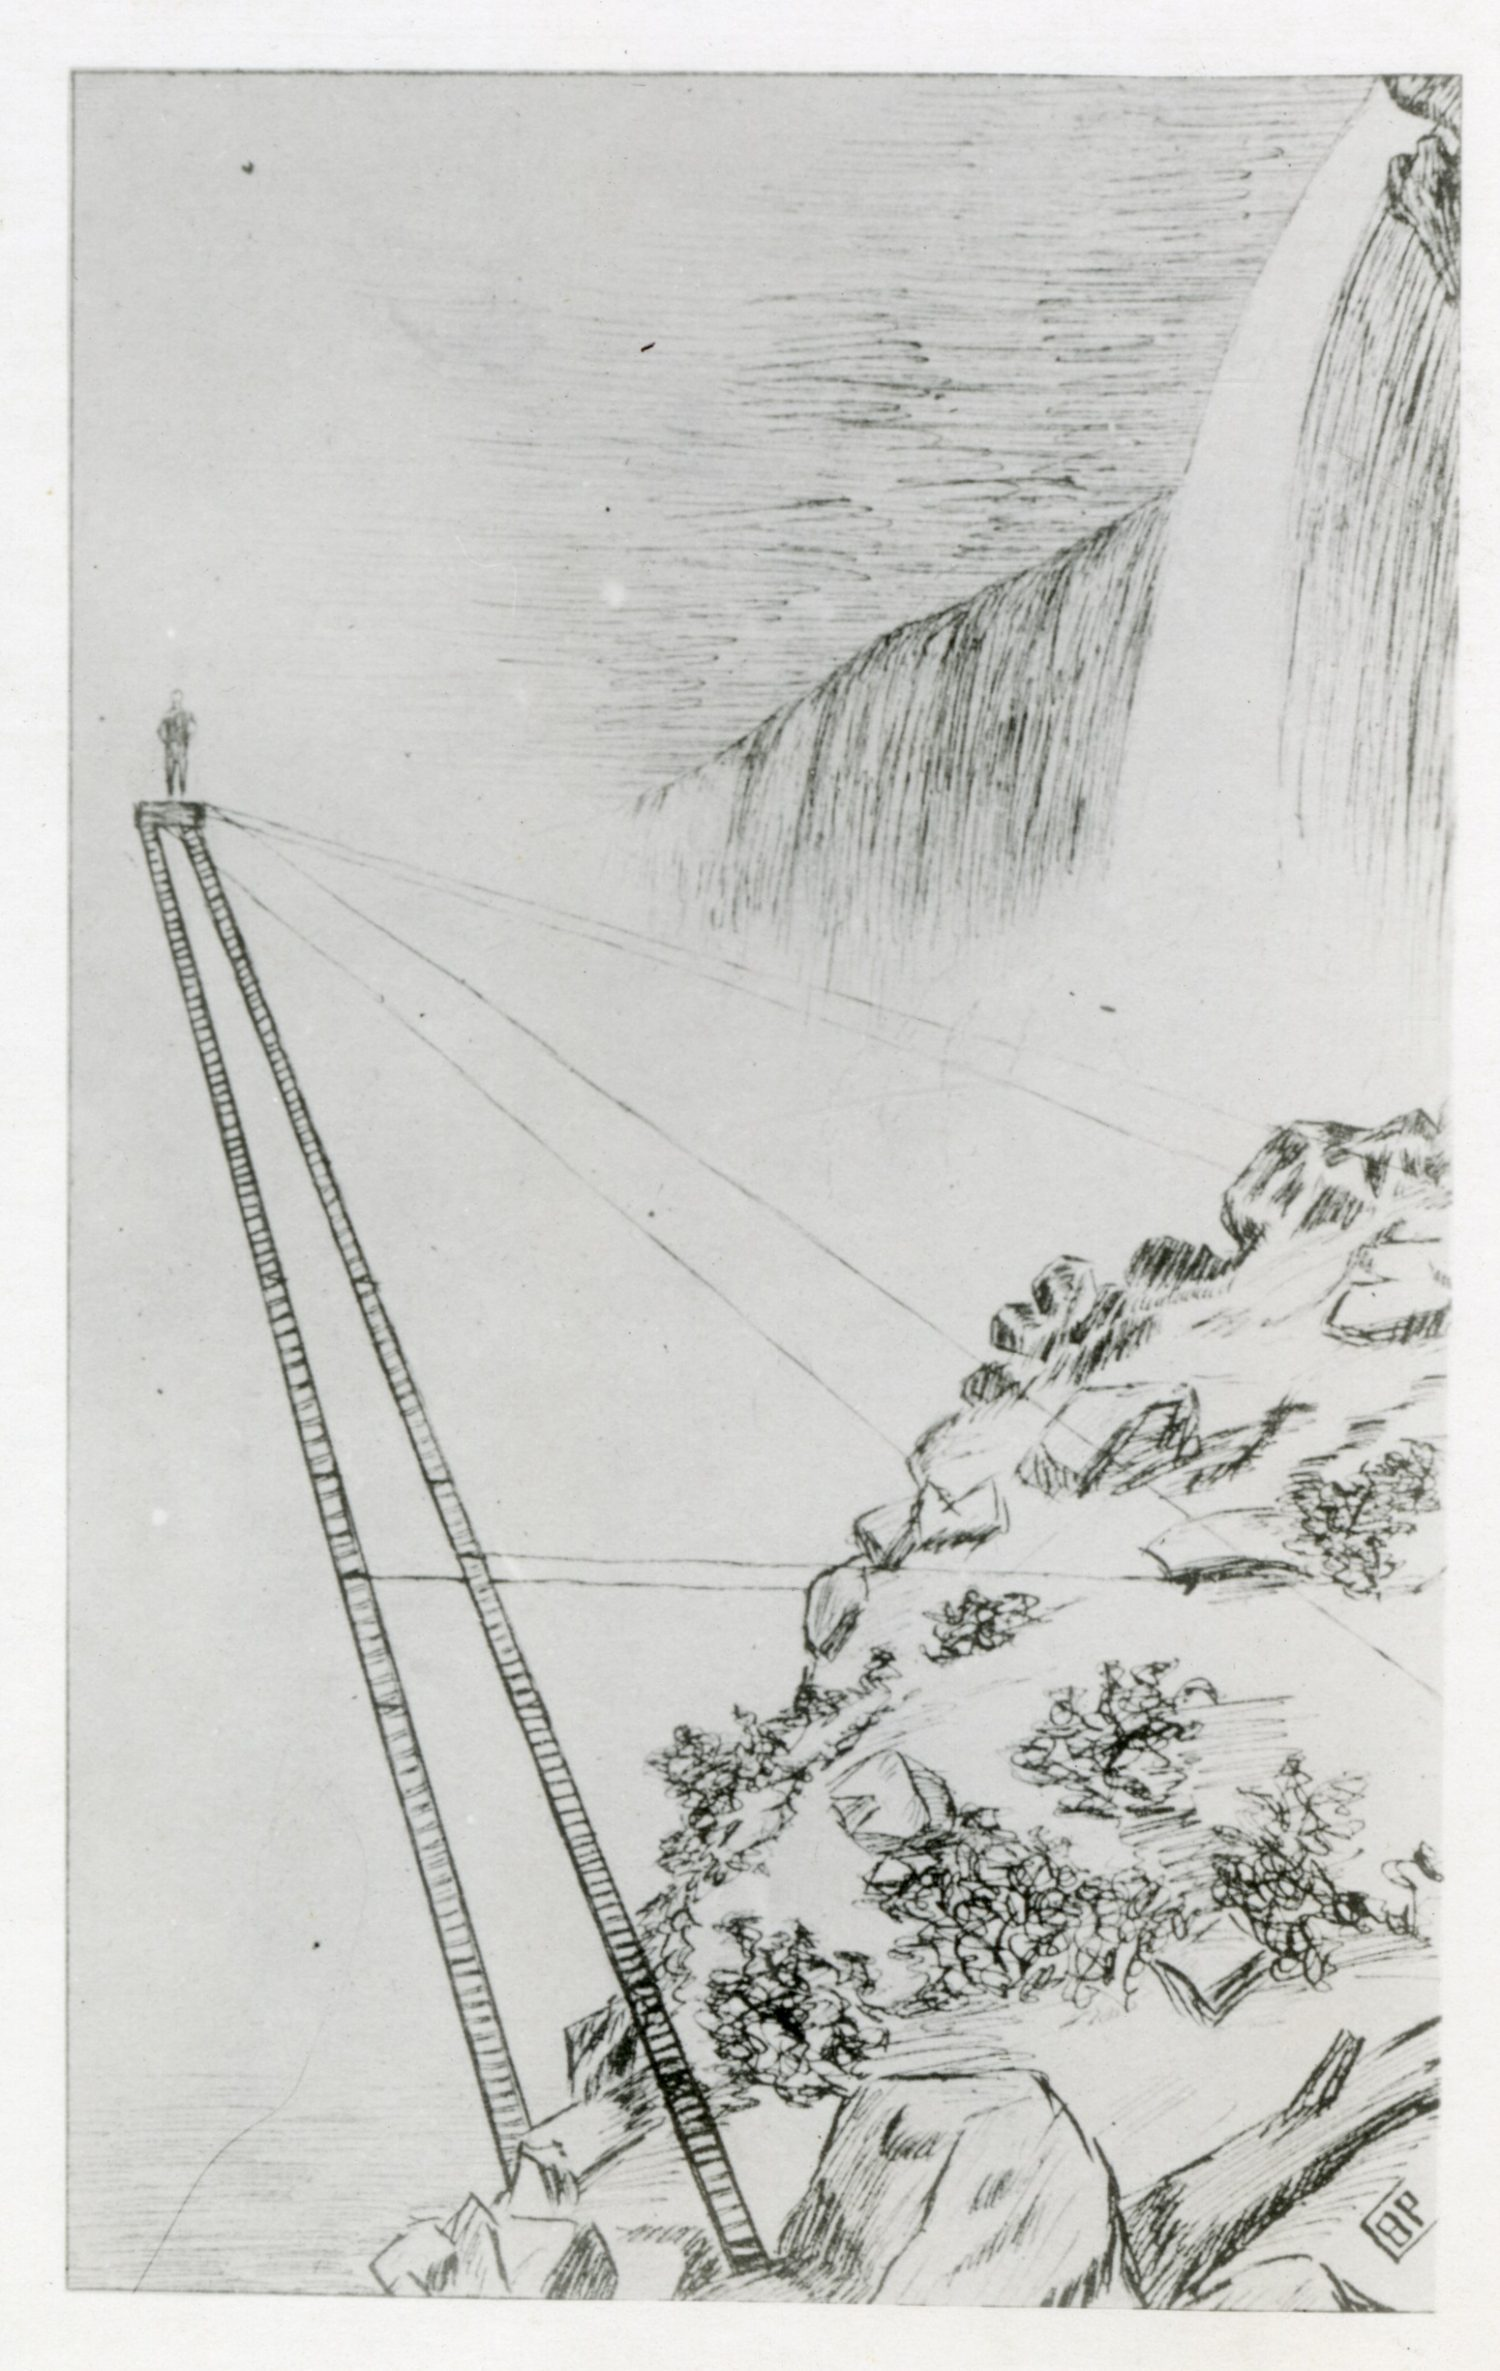 This image shows the platform that Sam Patch jumped from. It was a combination of two ladders, ropes and chains that were fastened to the rock on Goat Island. (Image courtesy of Niagara Falls Public Library's Local History Department)